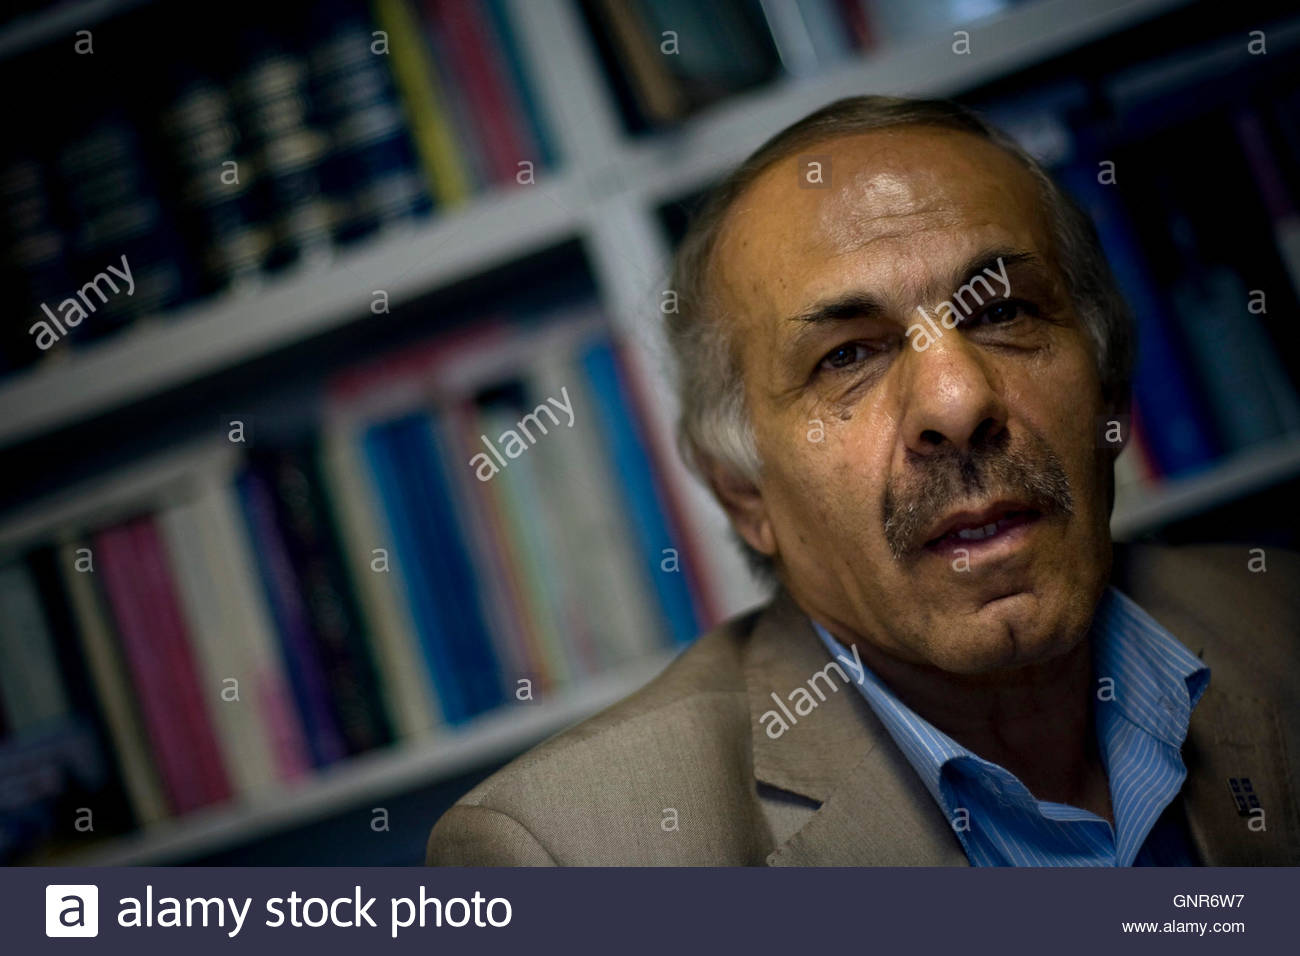 abdolsamad khorramshahi defence lawyer of jailed ian american abdolsamad khorramshahi defence lawyer of jailed ian american journalist roxana saberi attends a private interview reuters in tehran 20